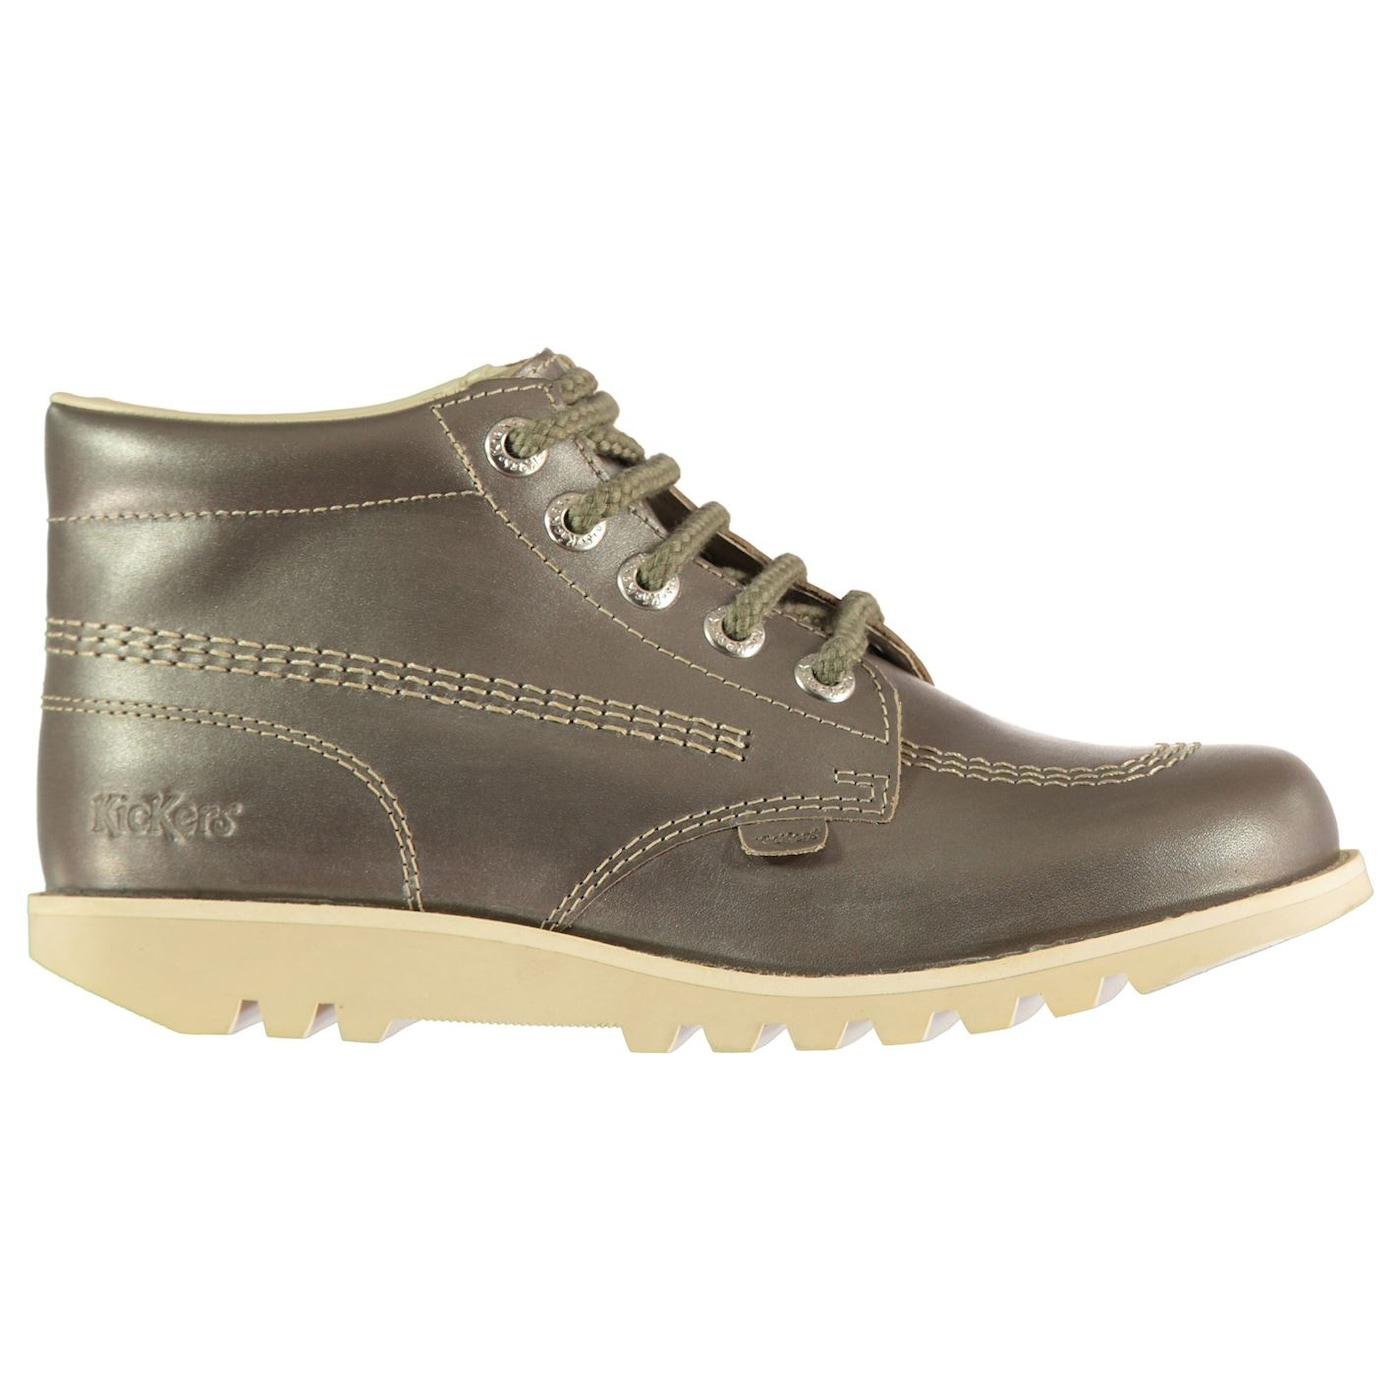 Kickers High Top Trainers Womens